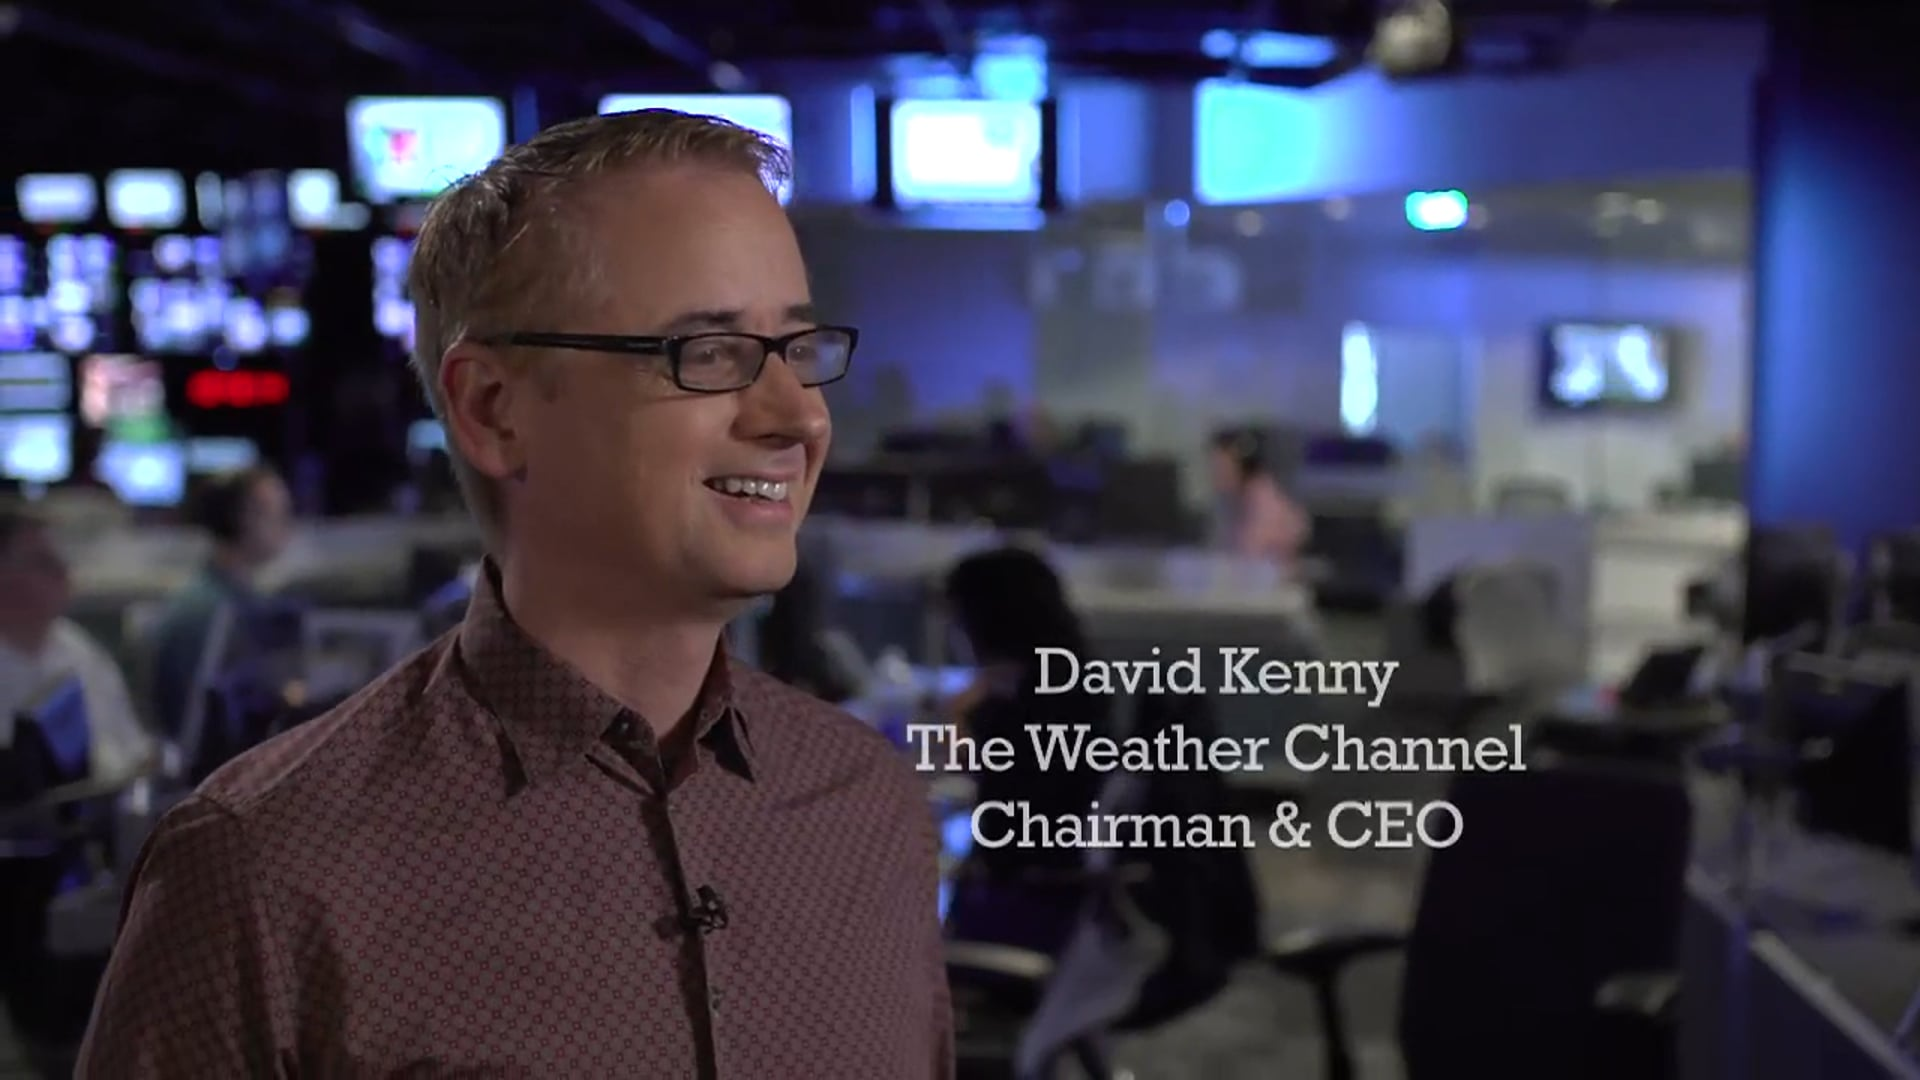 The Weather Channel: CEO (2013) Lensed by Jose A. Acosta and Brandon Thompson for Ignite.